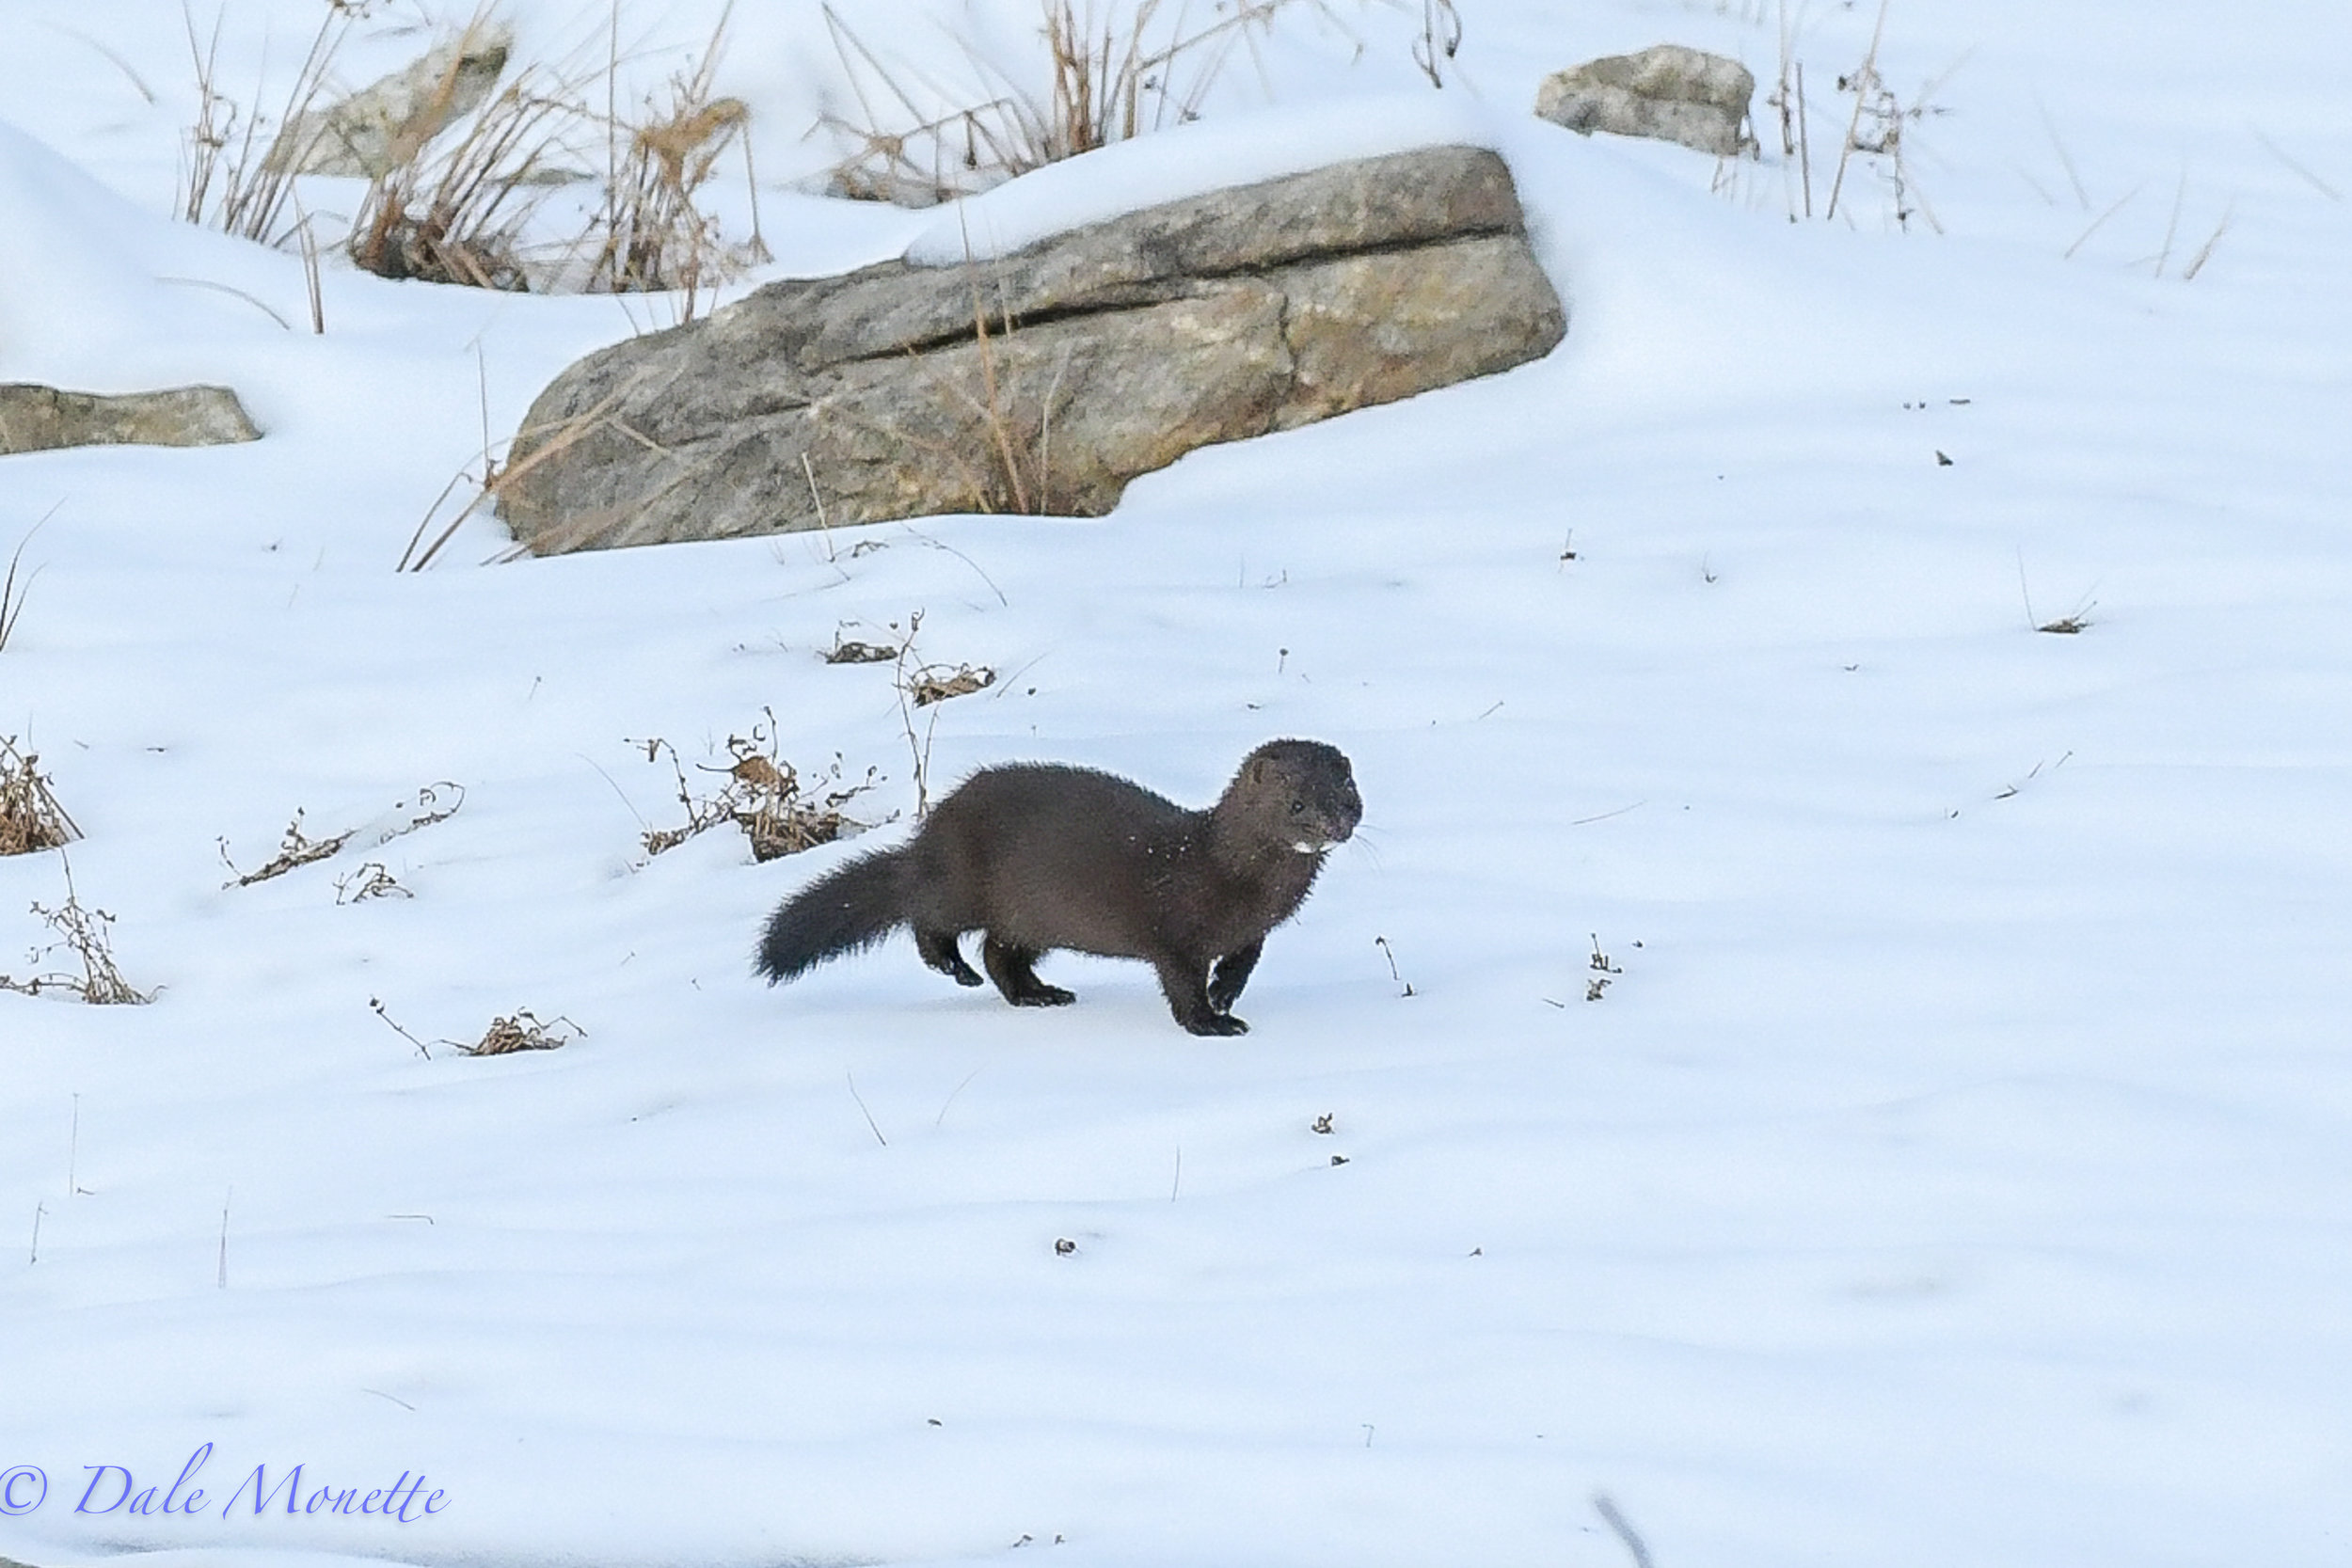 Here is another mink image.  They sure are alert and fast creatures.....